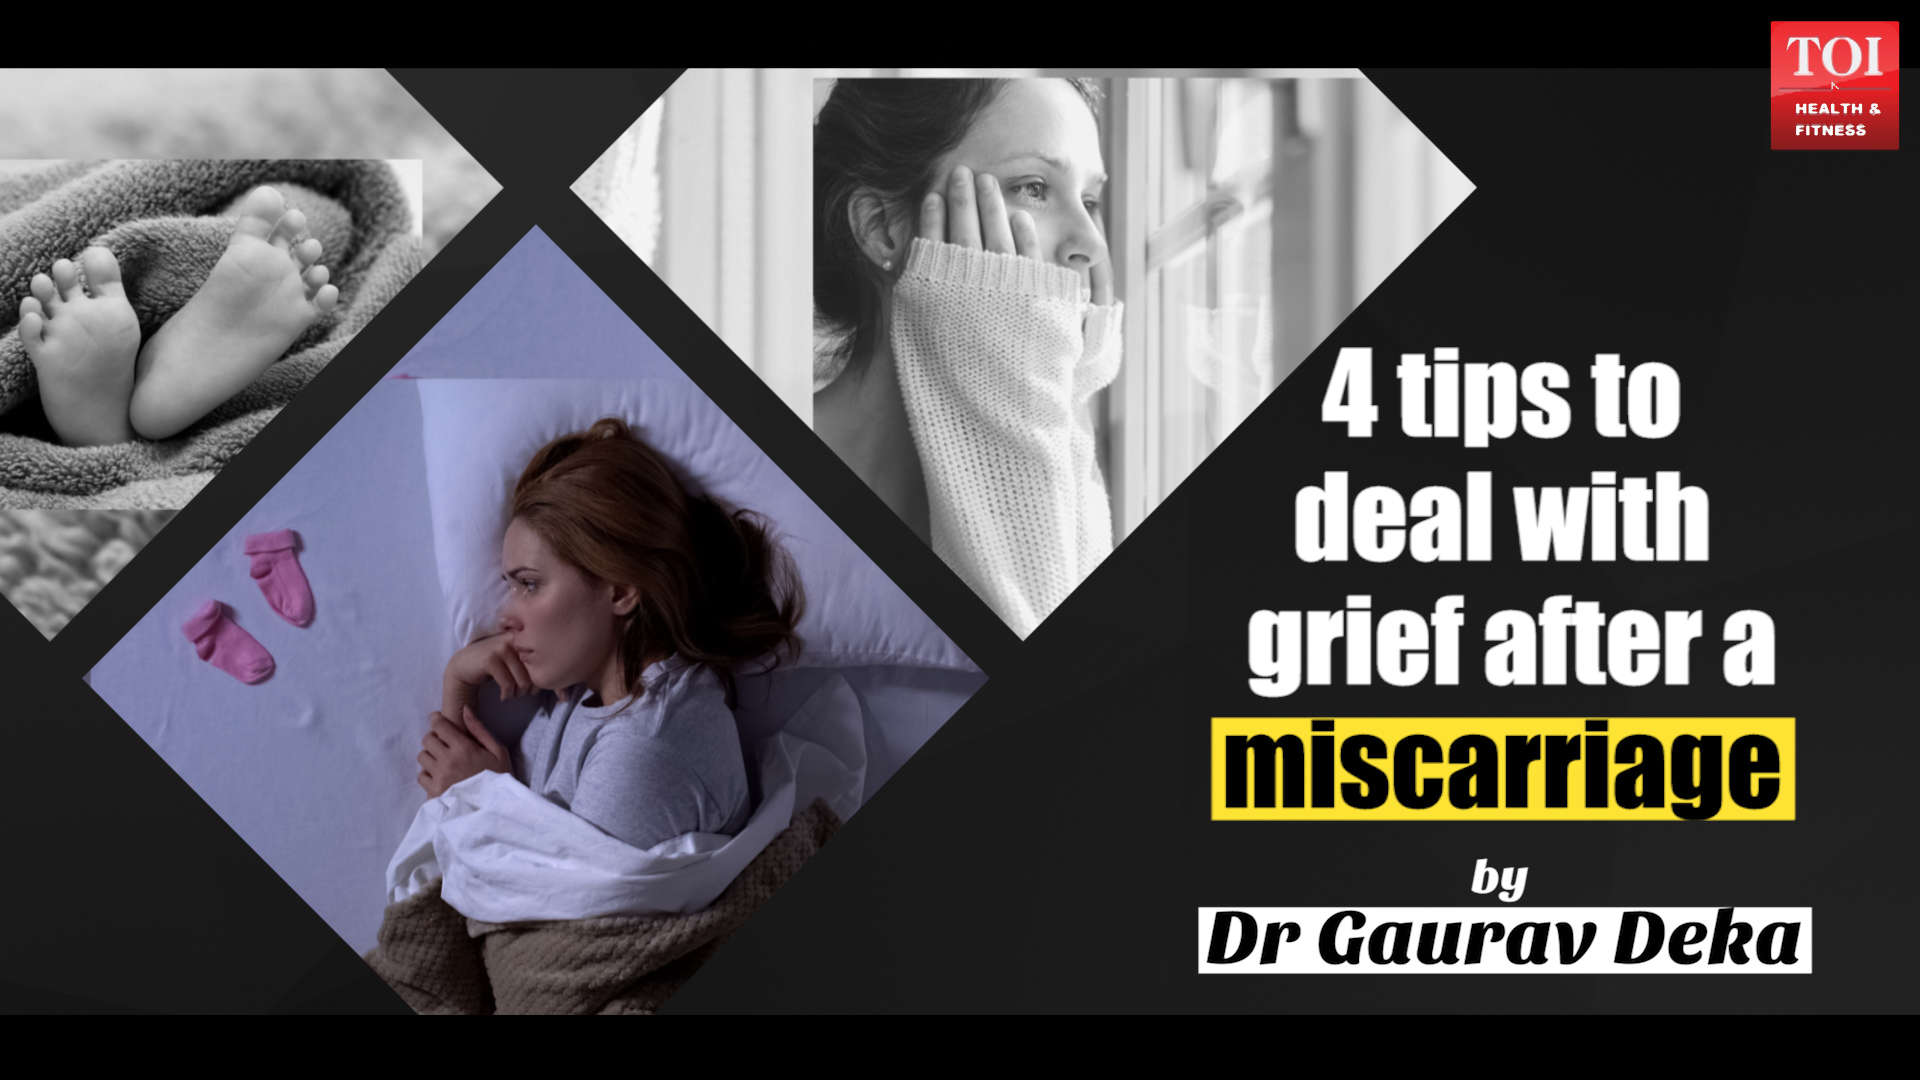 4-tips-to-deal-with-grief-after-a-miscarriage-by-gaurav-deka